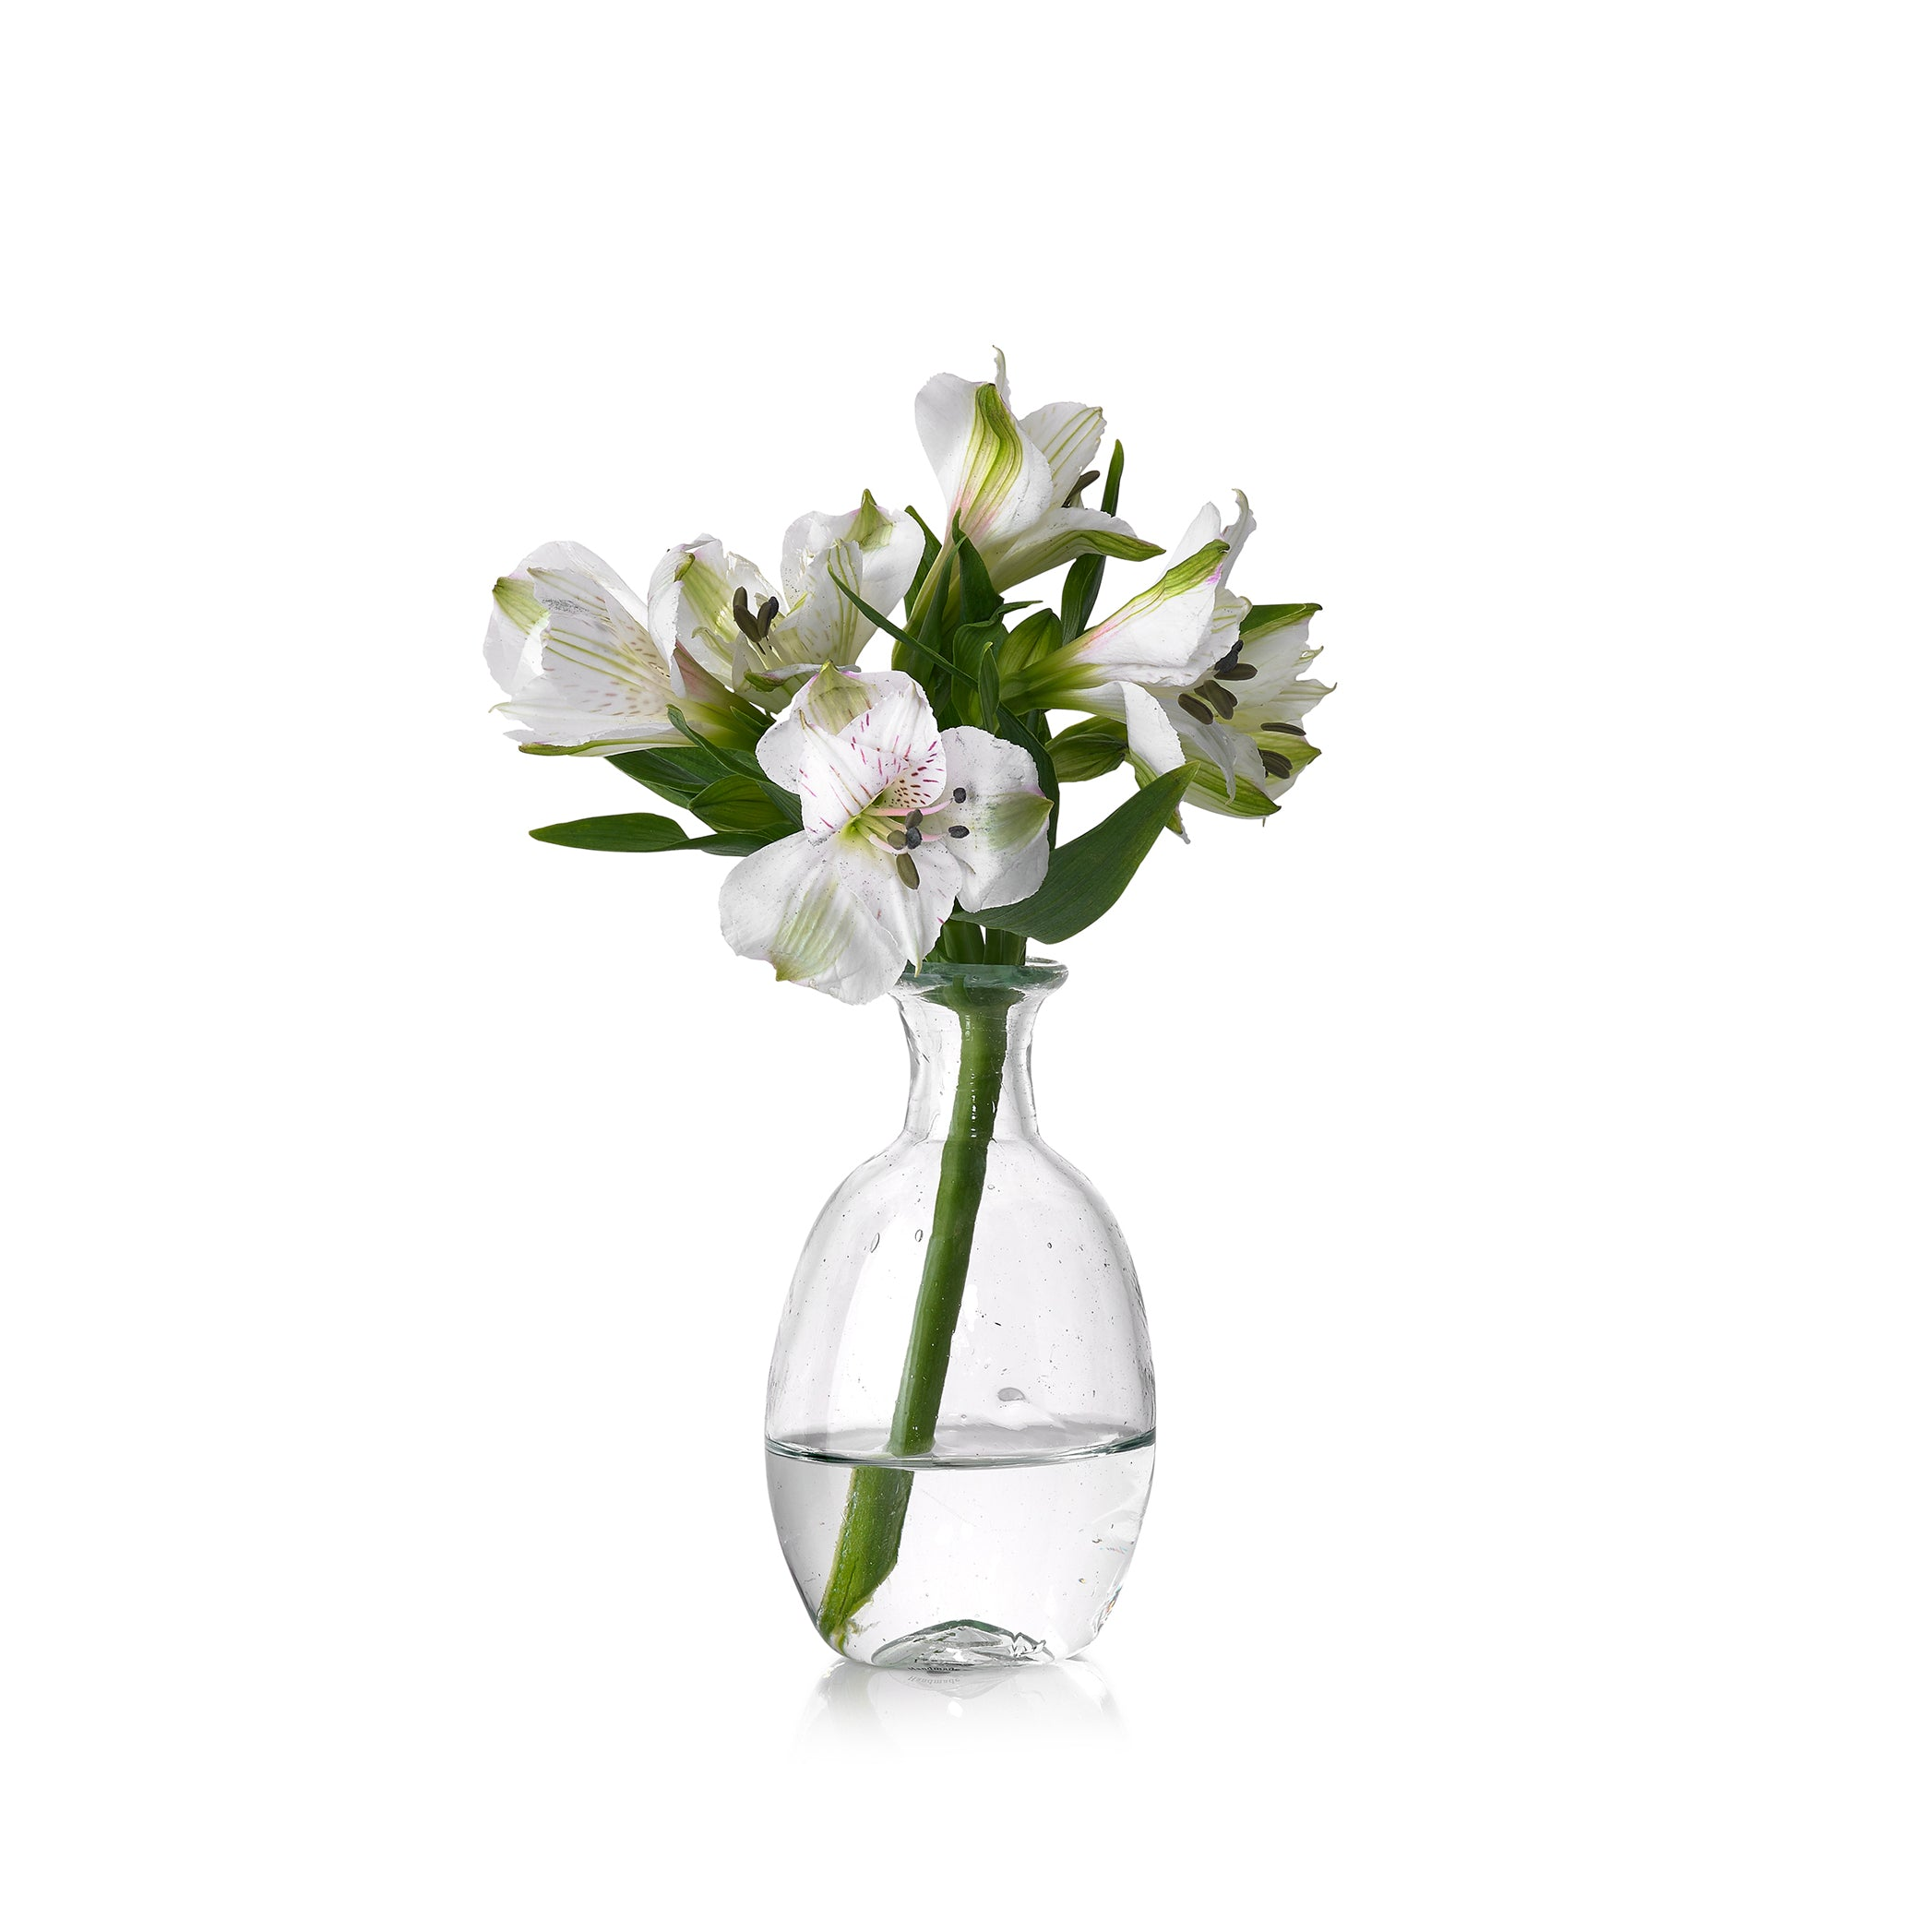 Small Handblown Amour Vase